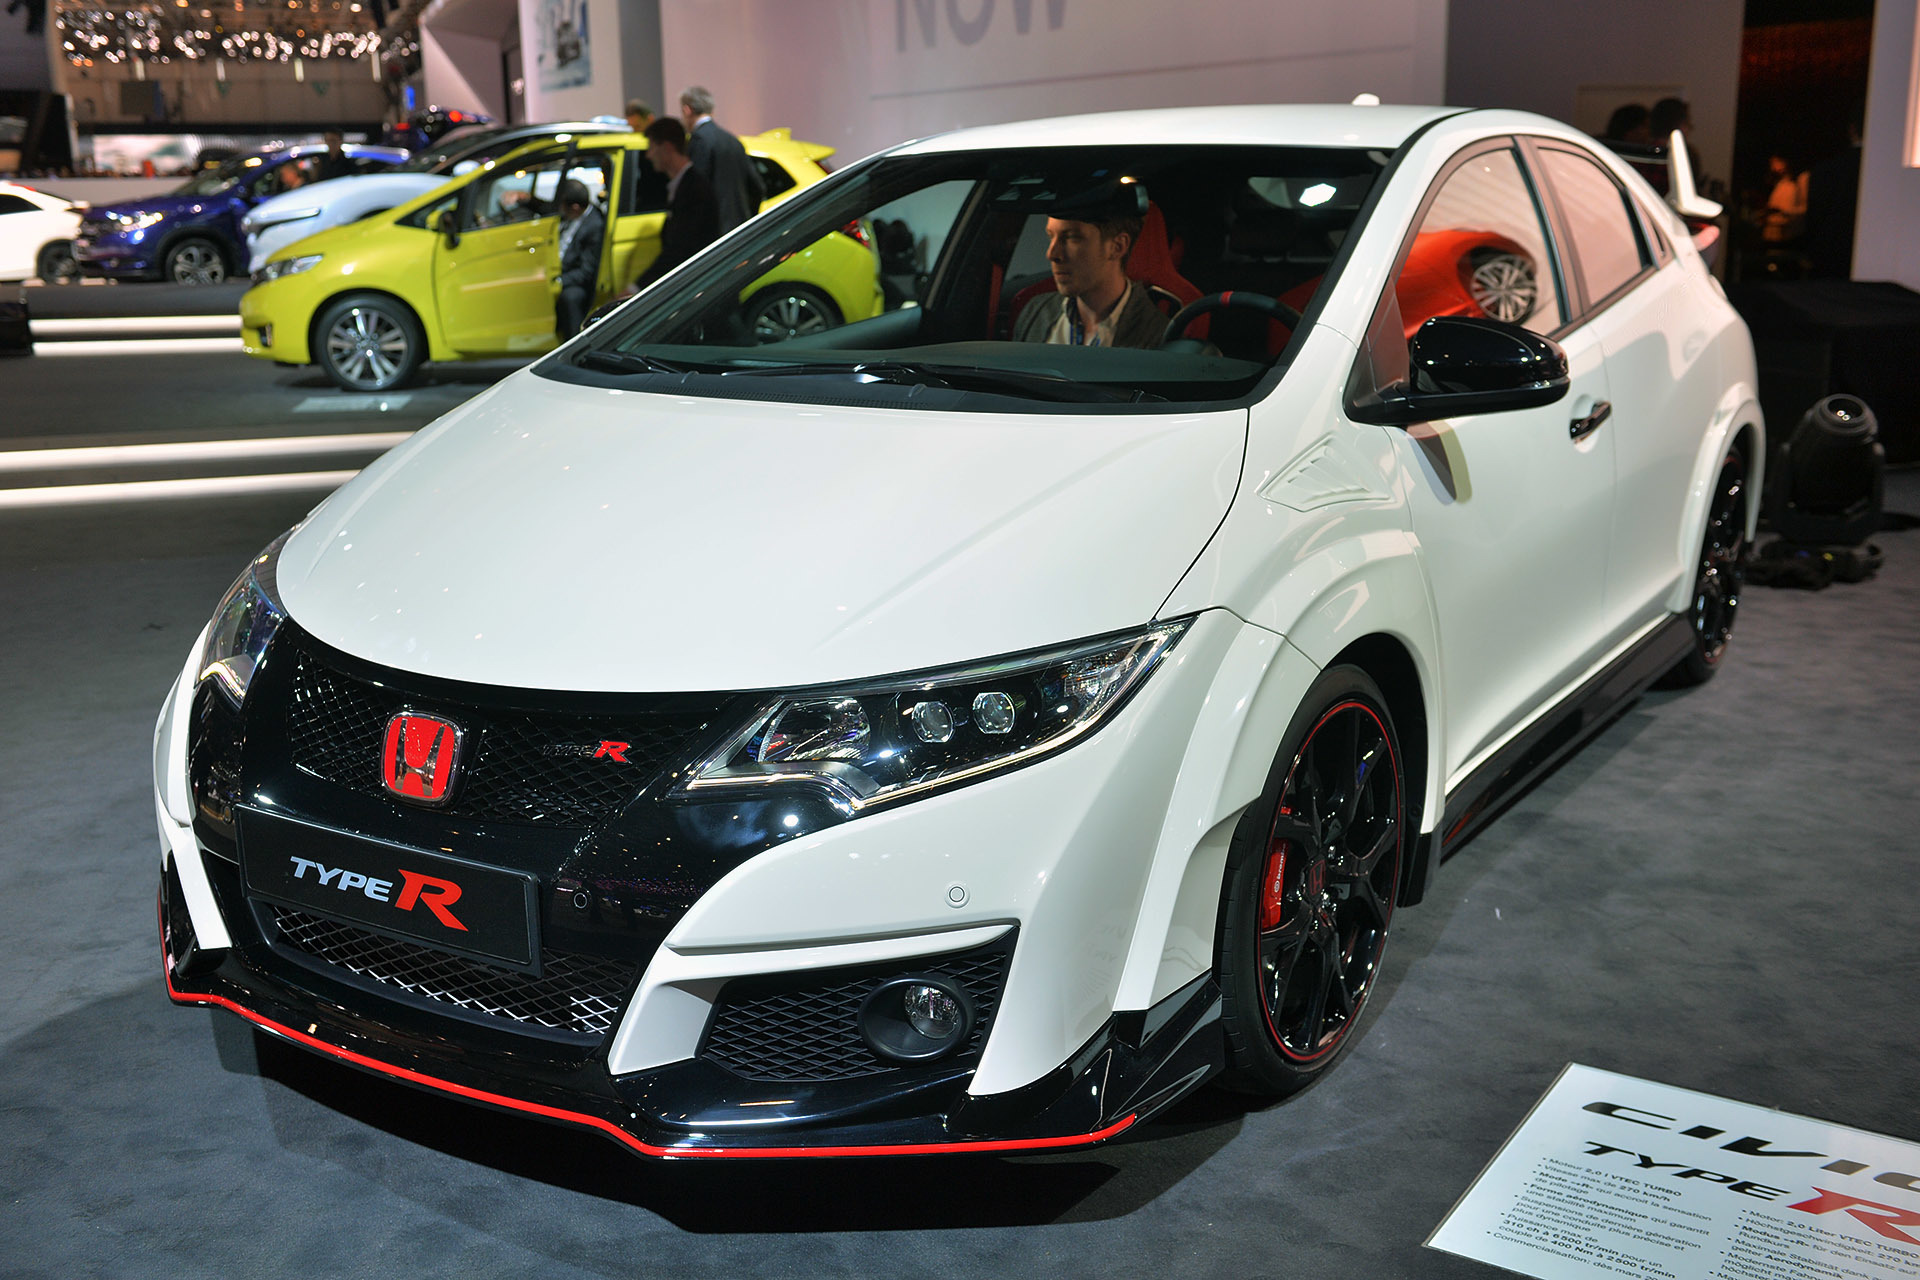 2016 honda civic type r geneva 2015 1. Black Bedroom Furniture Sets. Home Design Ideas